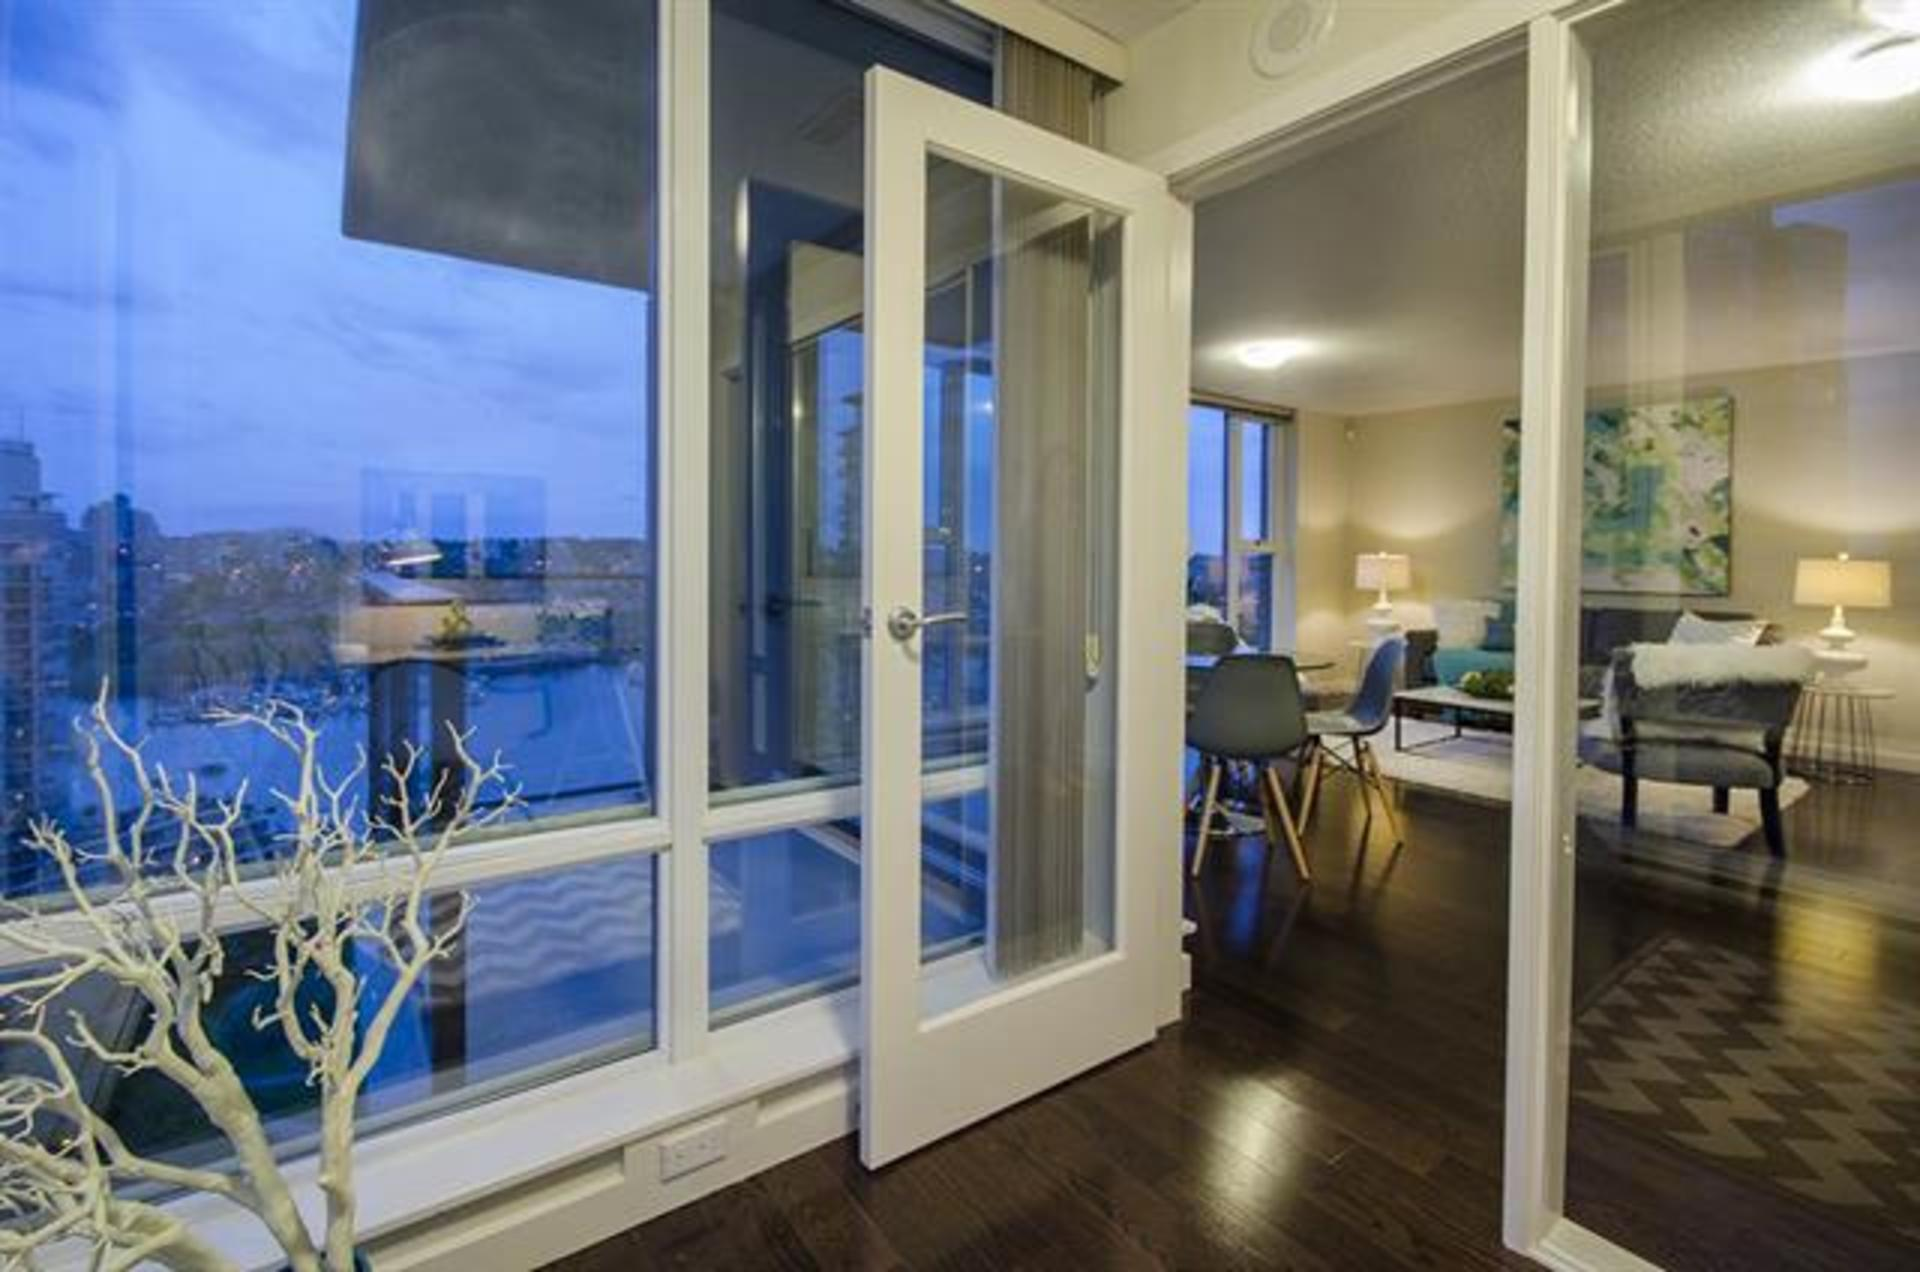 262087171-5 at 2806 - 583 Beach Crescent, Yaletown, Vancouver West